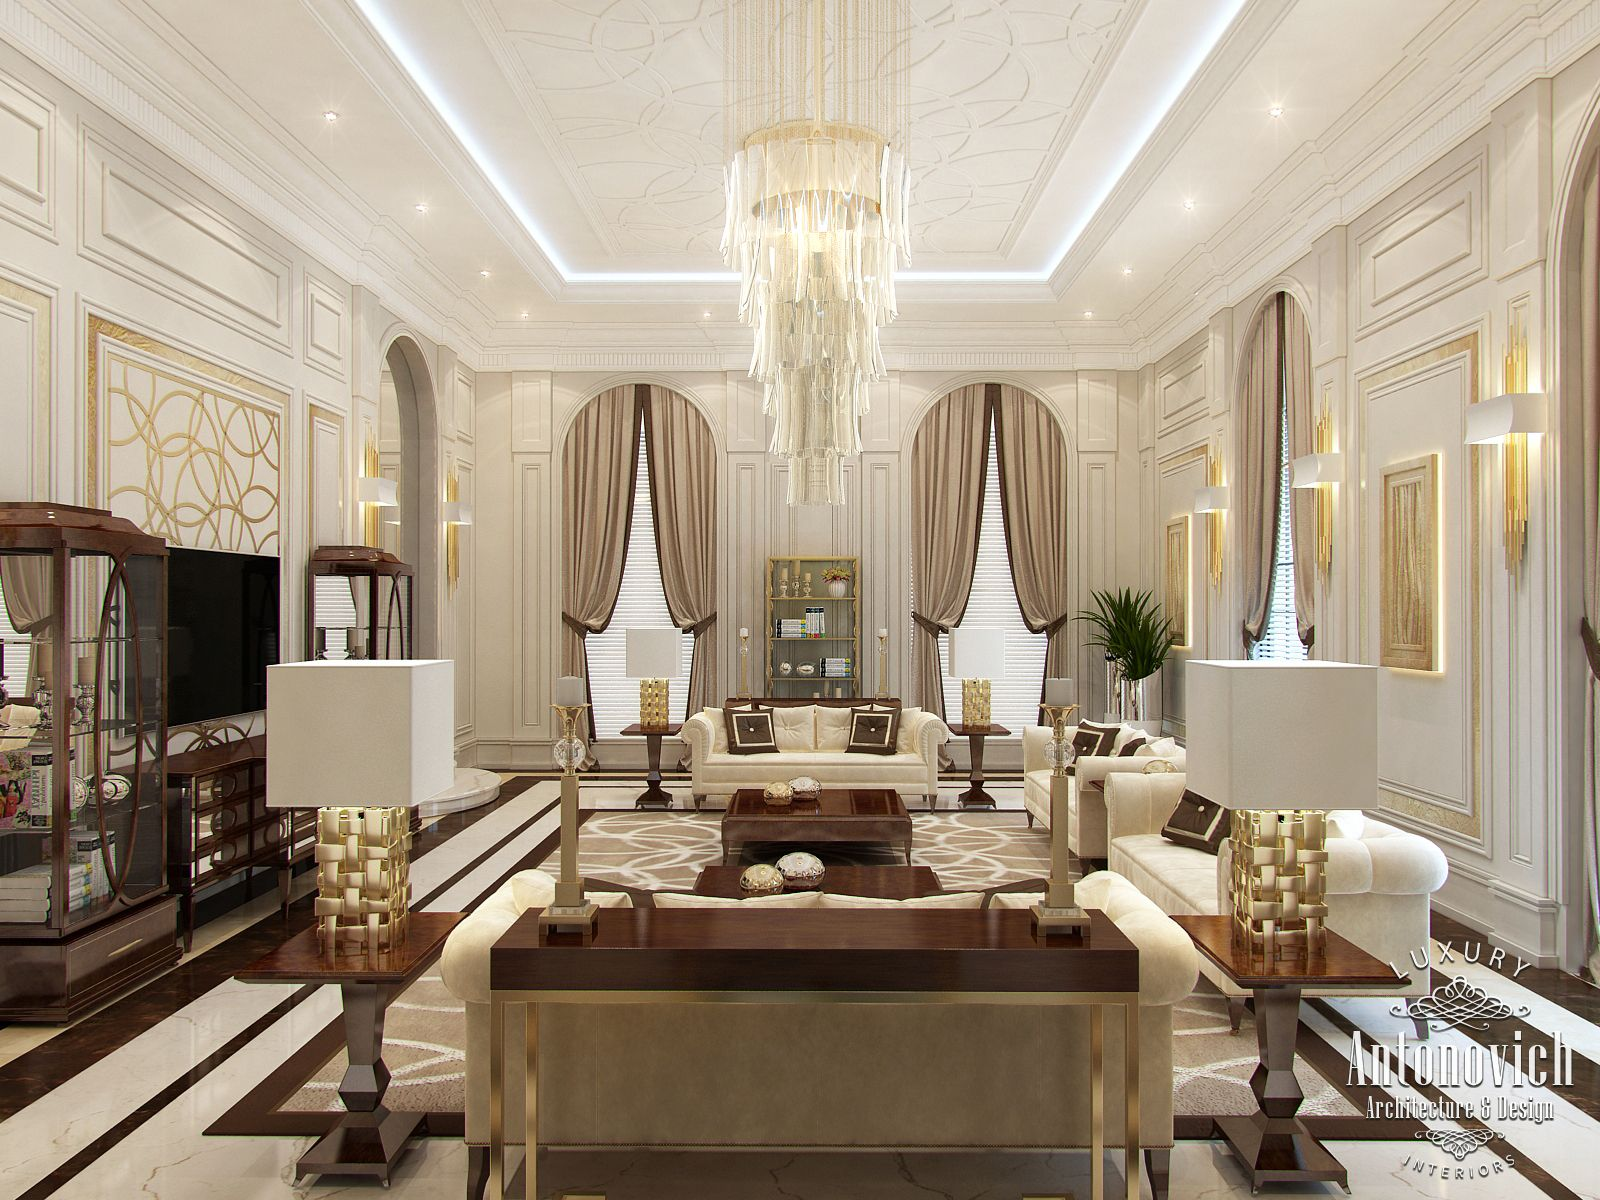 LUXURY ANTONOVICH DESIGN UAE: Interior Design Dubai from ...